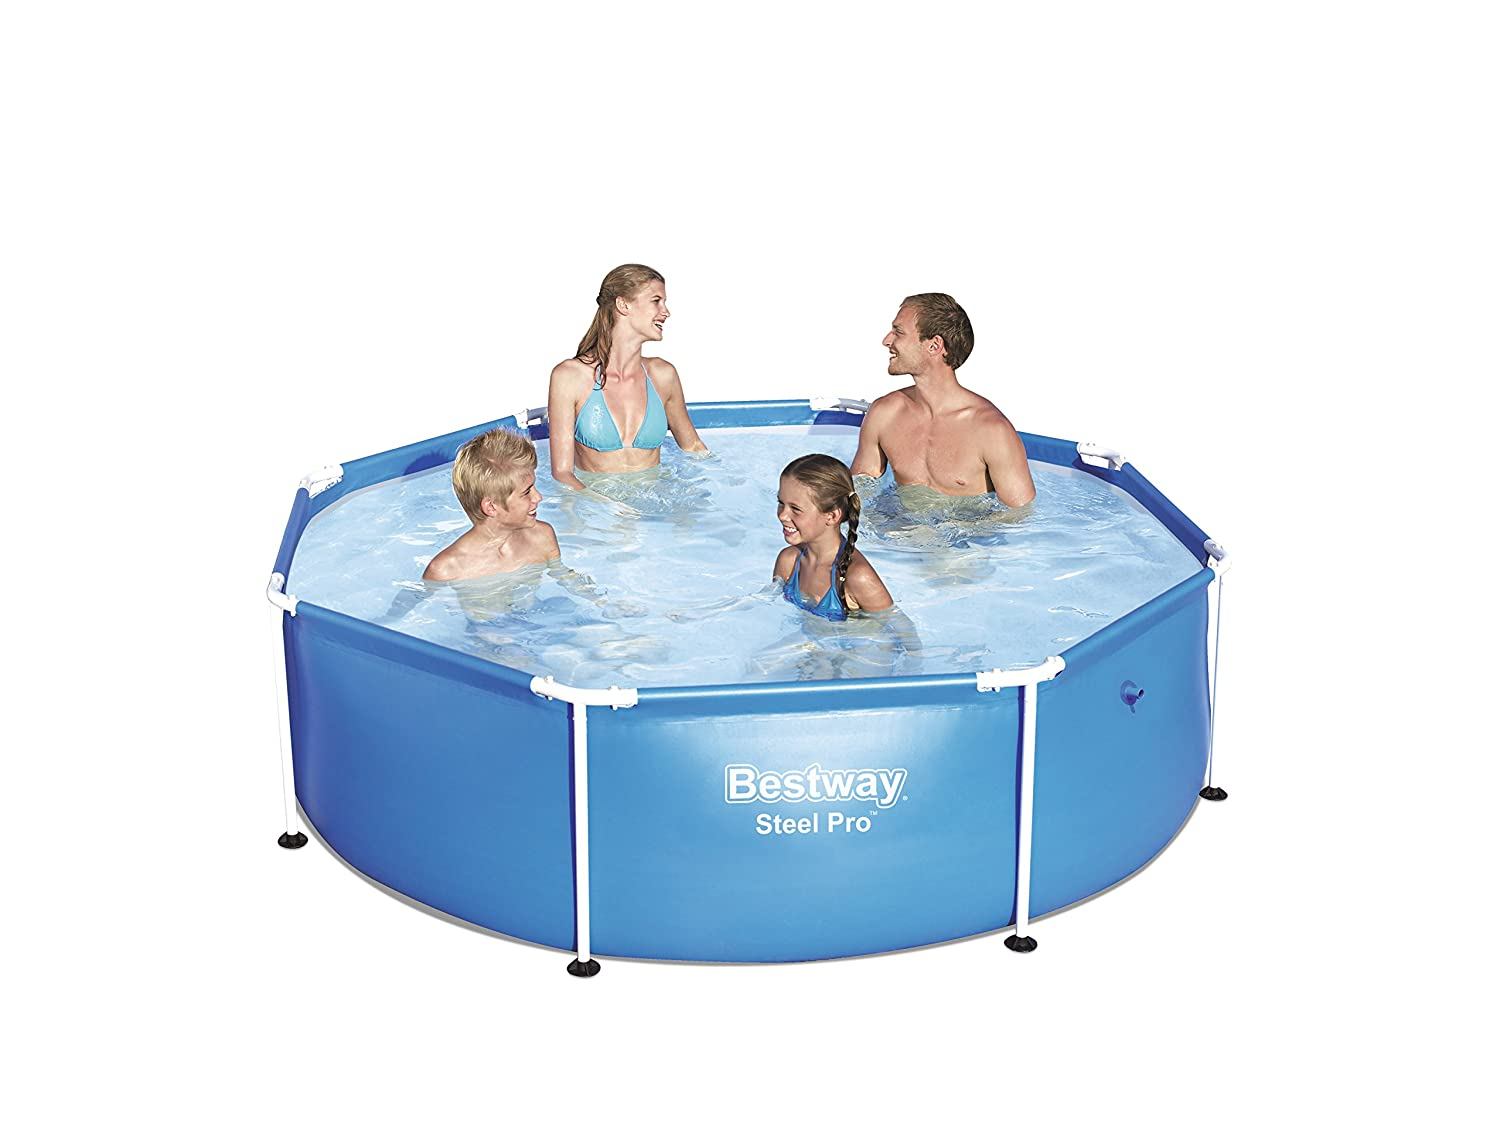 Bestway 56432-BEUX16AB02 Splash Frame Pool in Shade, with a Sun Canopy and Sprinkler 244 x 51 - Orange.